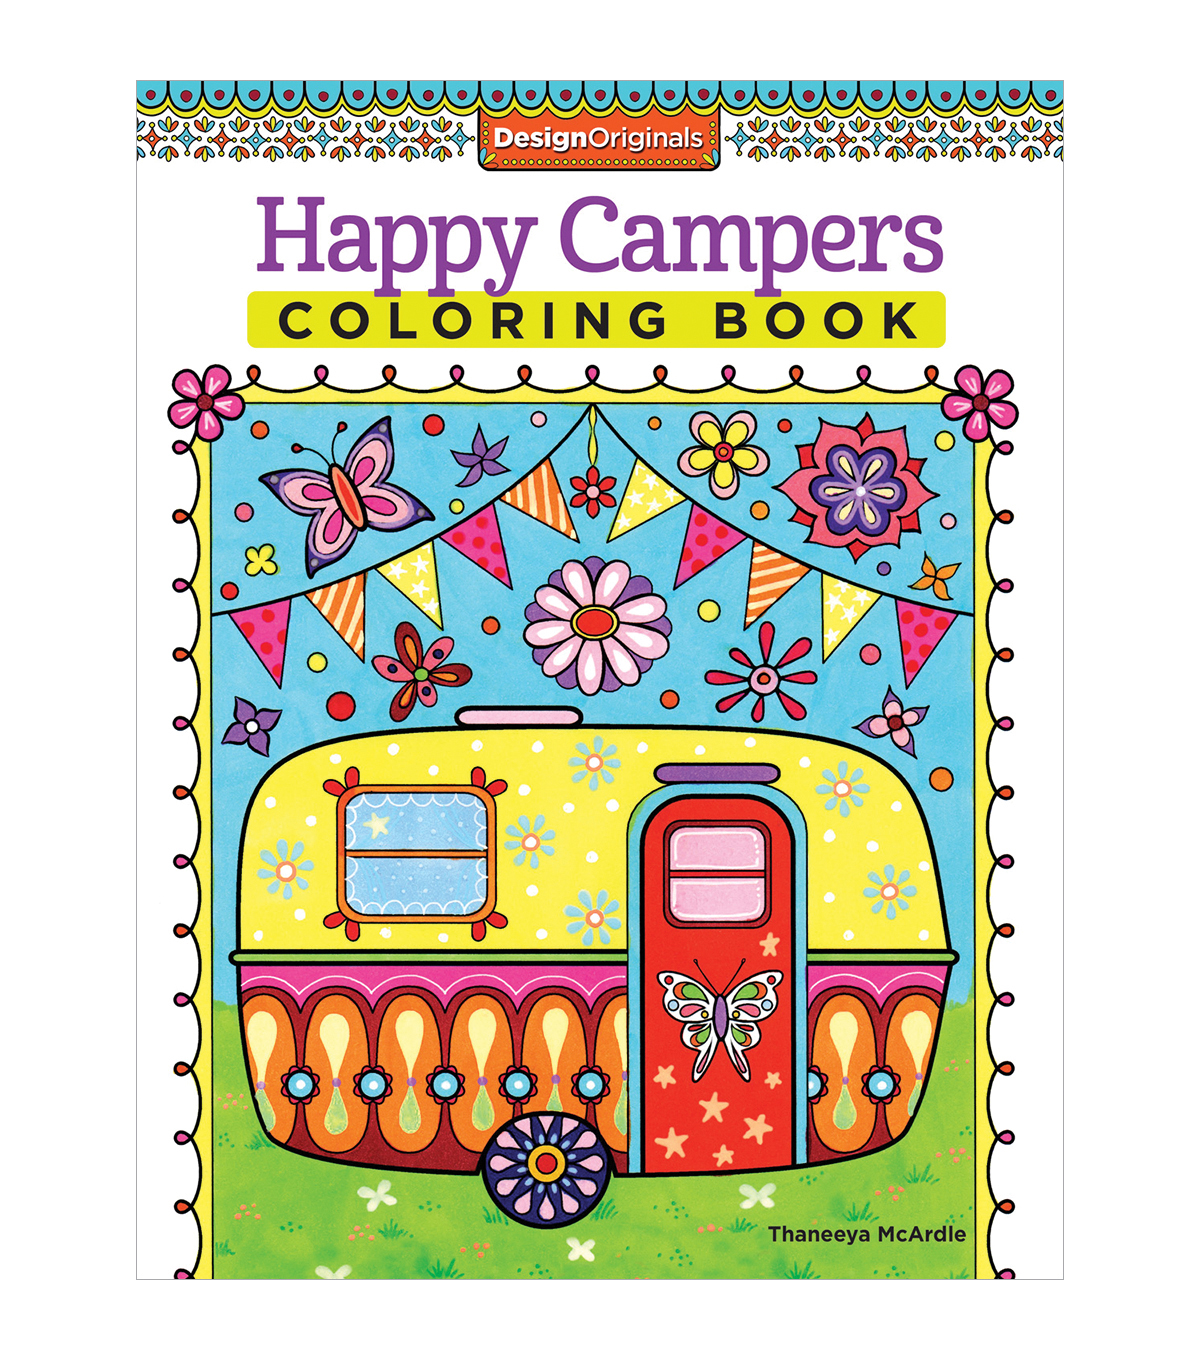 Design Originals Happy Campers Coloring Book